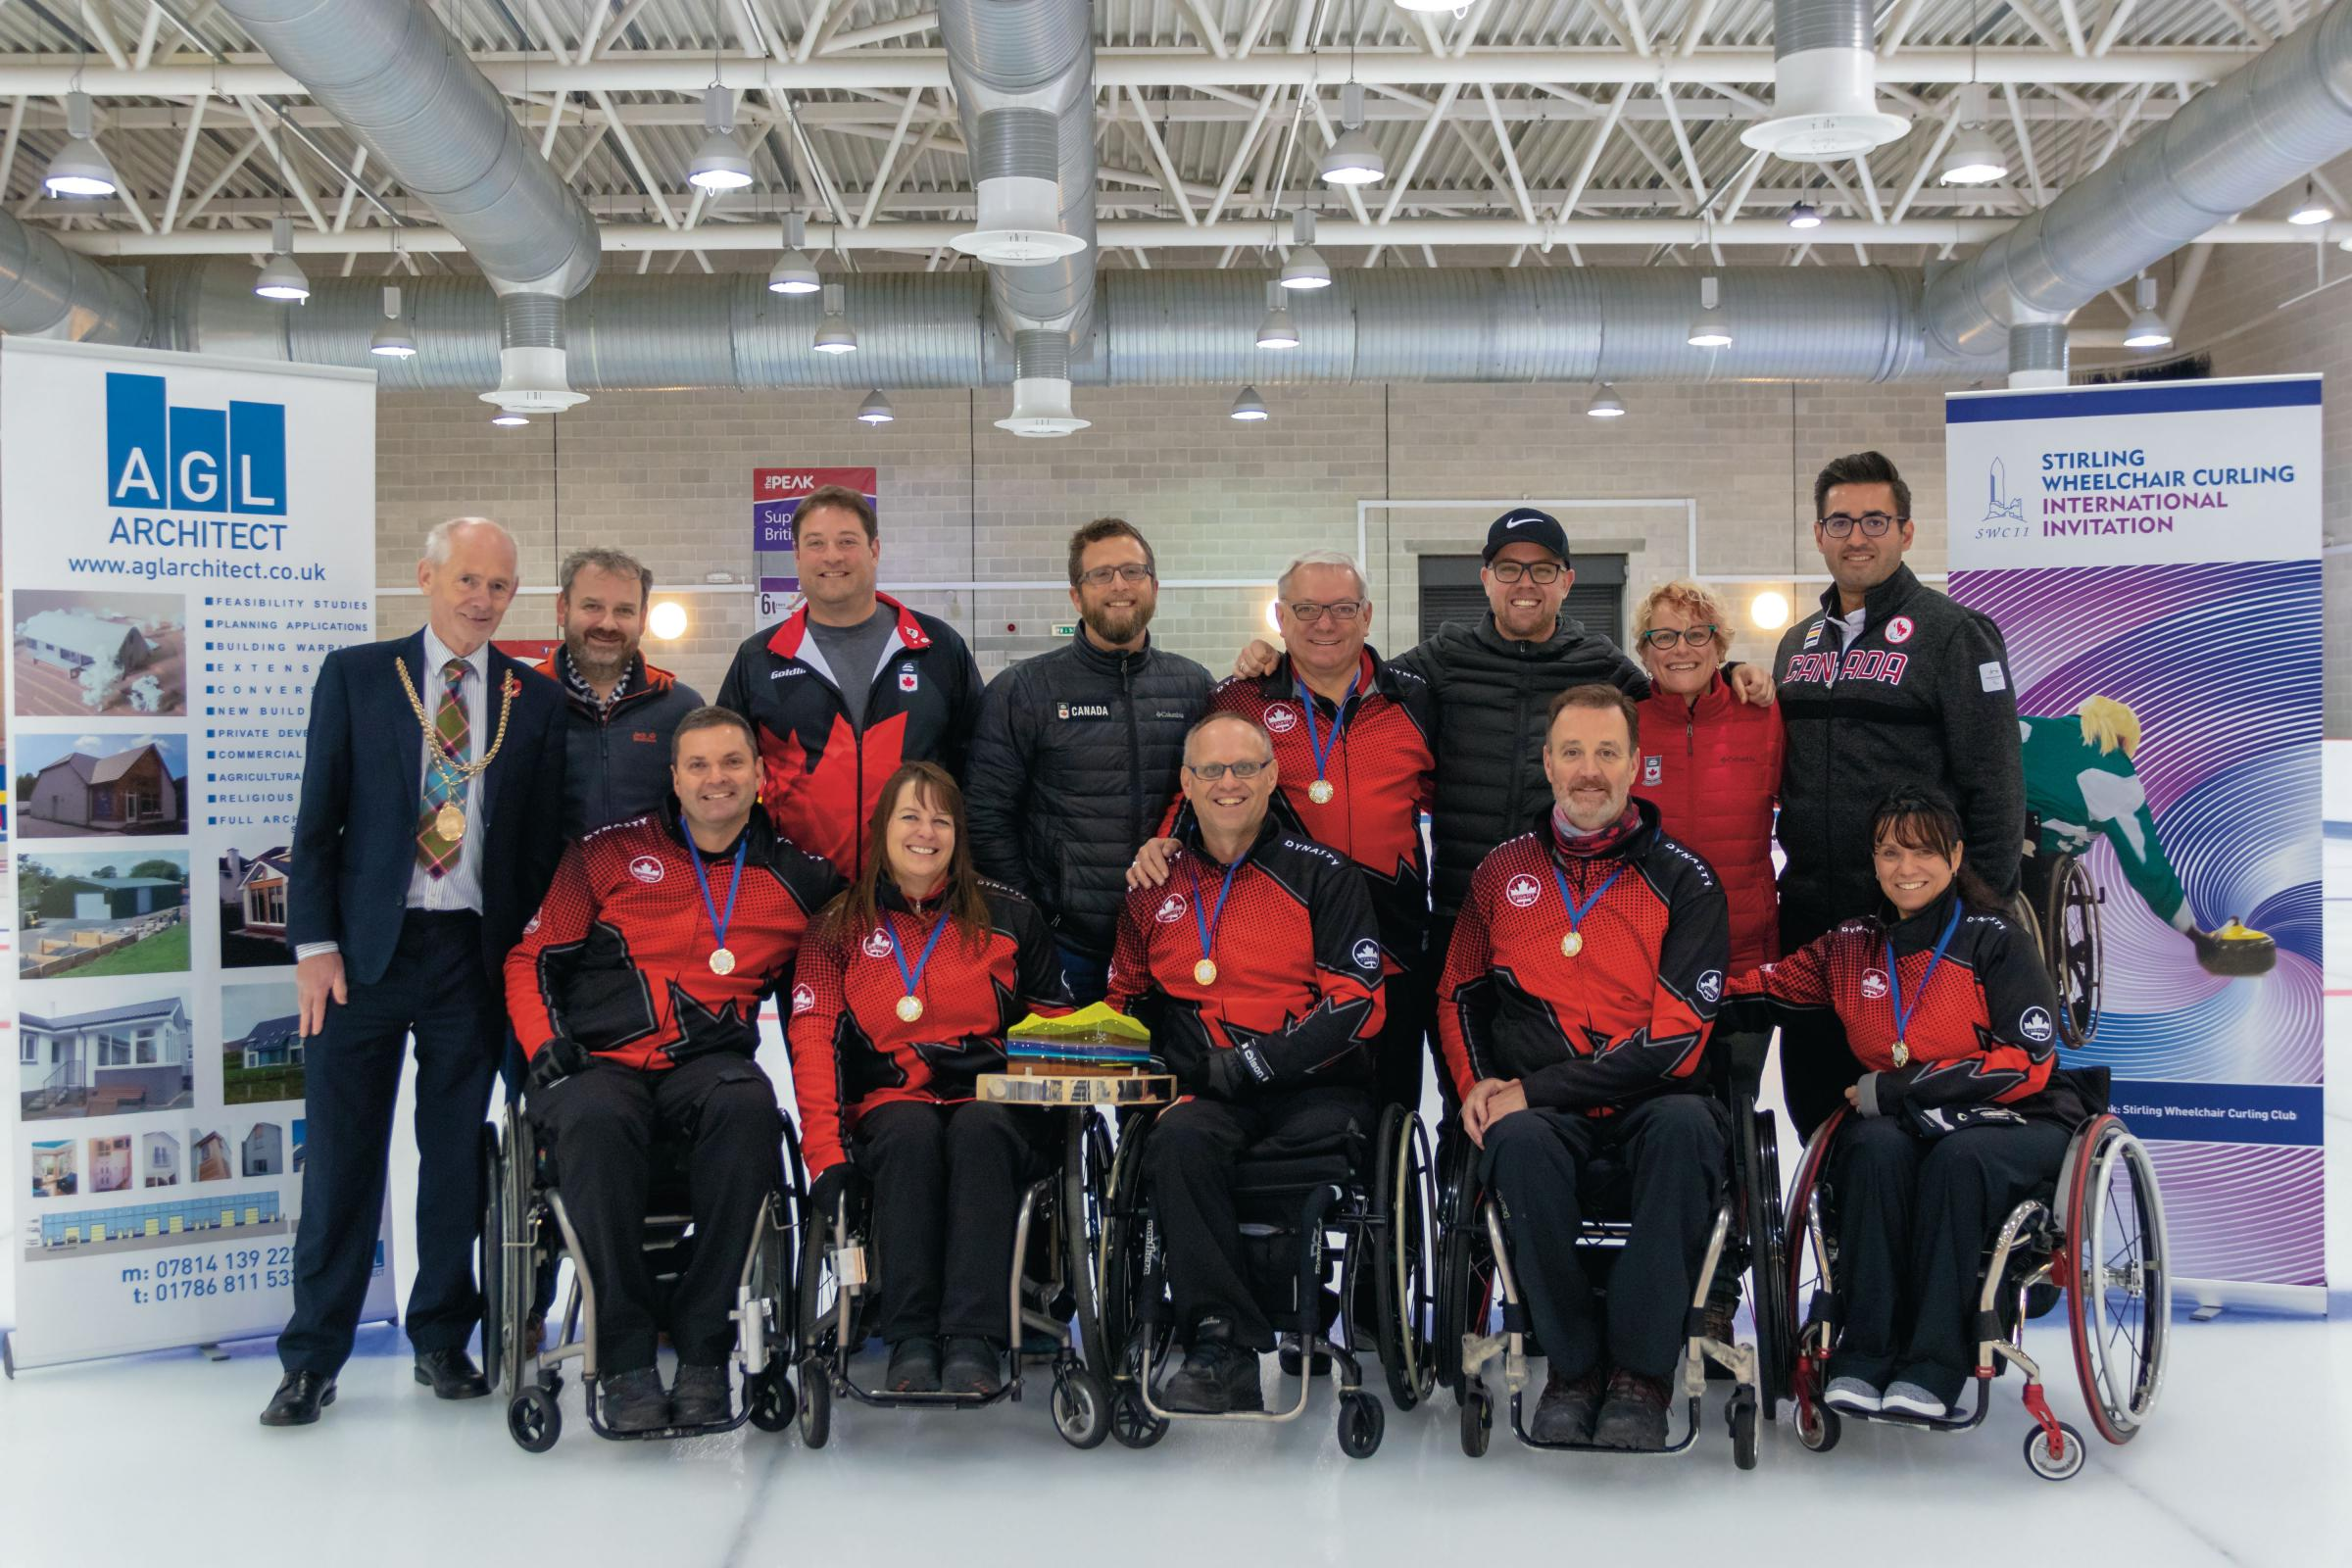 CHAMPIONS: The Canadian team won the Stirling Wheelchair Curling International Invitational 2018